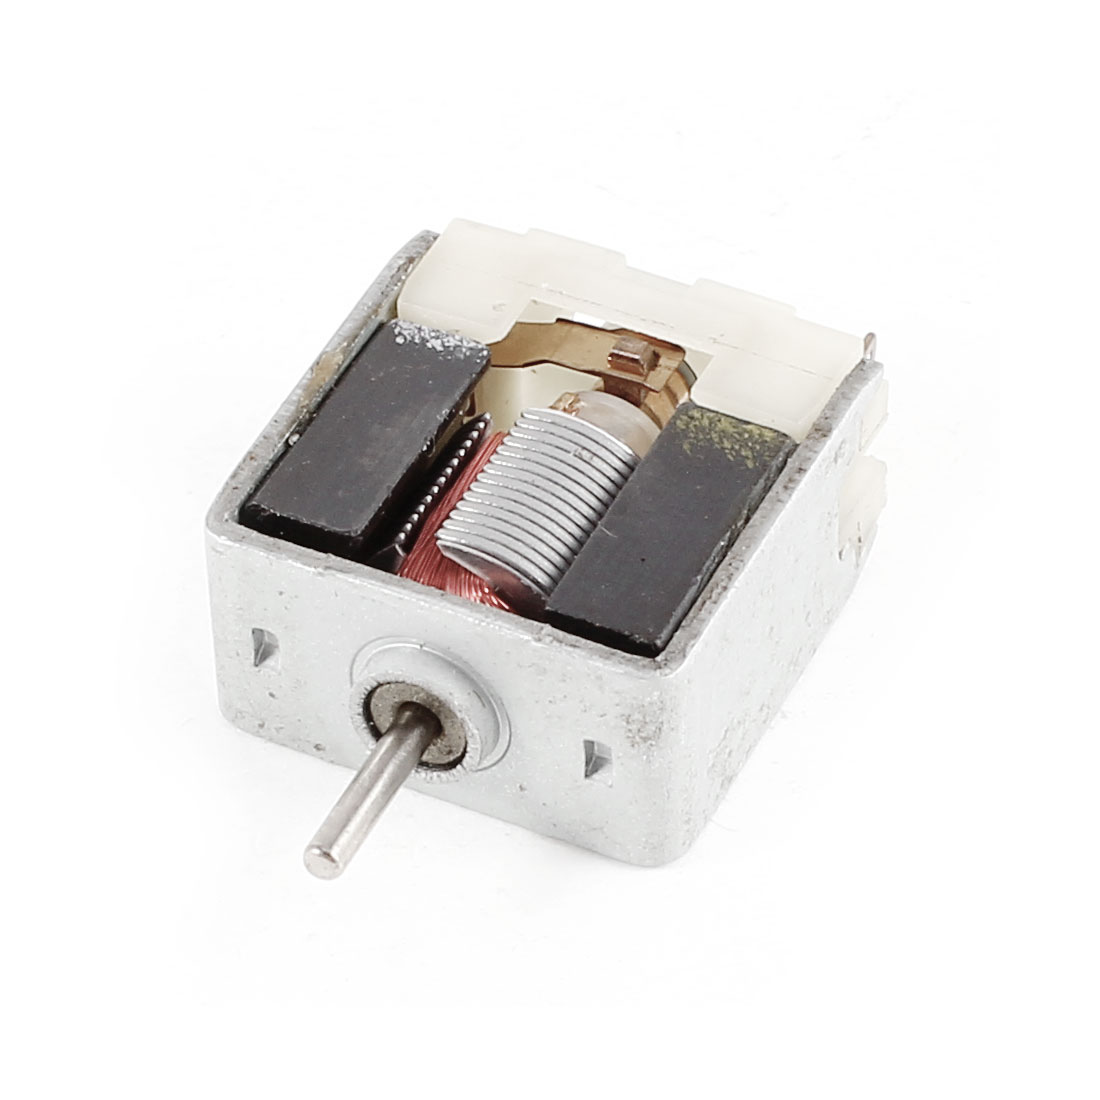 Magnetic Micro Motor 12000RPM DC 3V 19x18x9mm for Toys DIY